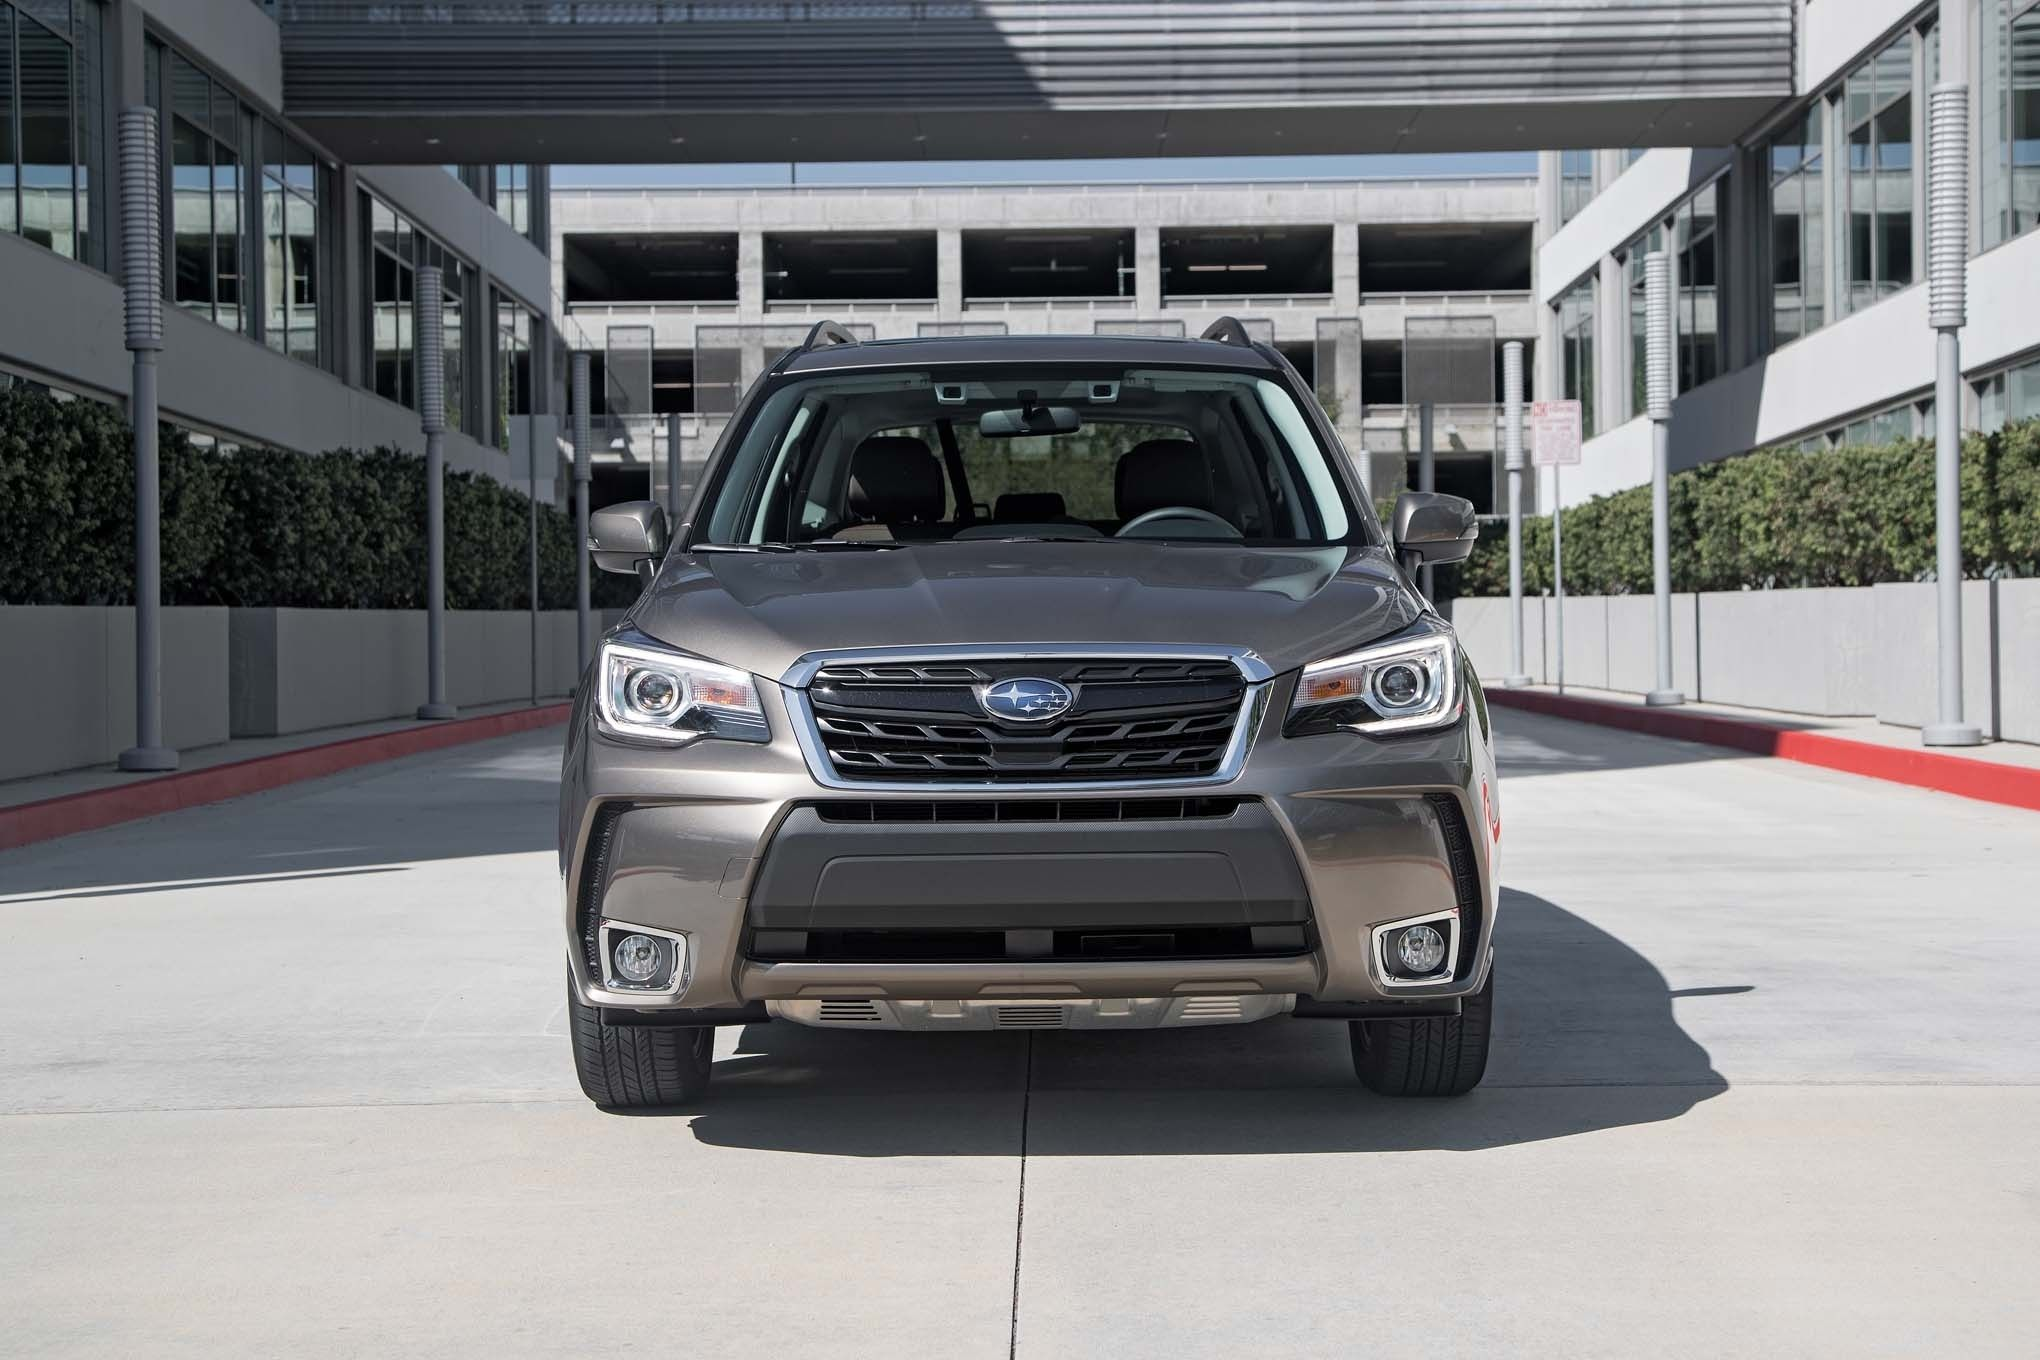 Best 2017 Forester Xt Touring Redesign And Price Touring Subaru Forester Xt Subaru Forester